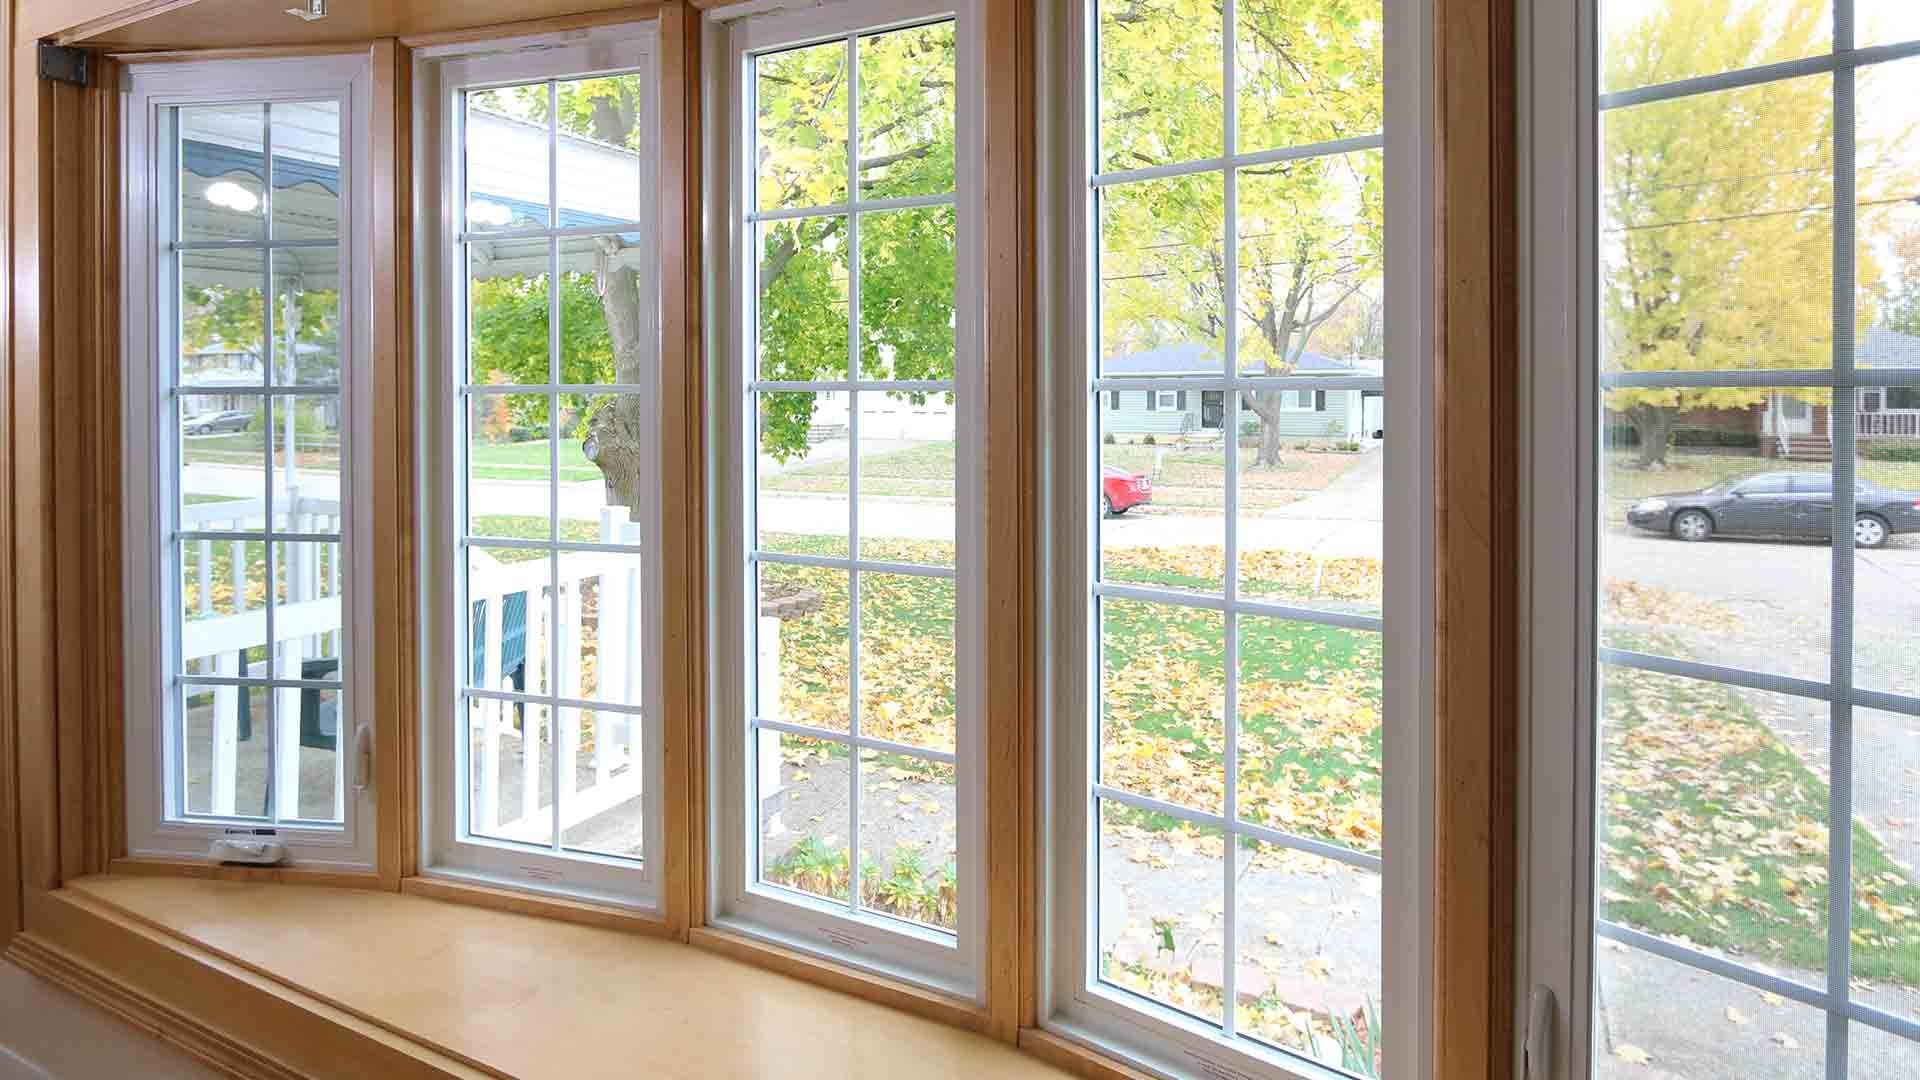 Save Energy And Reduce Your Electricity Bills By Installing Energy Efficient Windows Windowreplacement Rep Windows And Doors Door Installation Window Prices